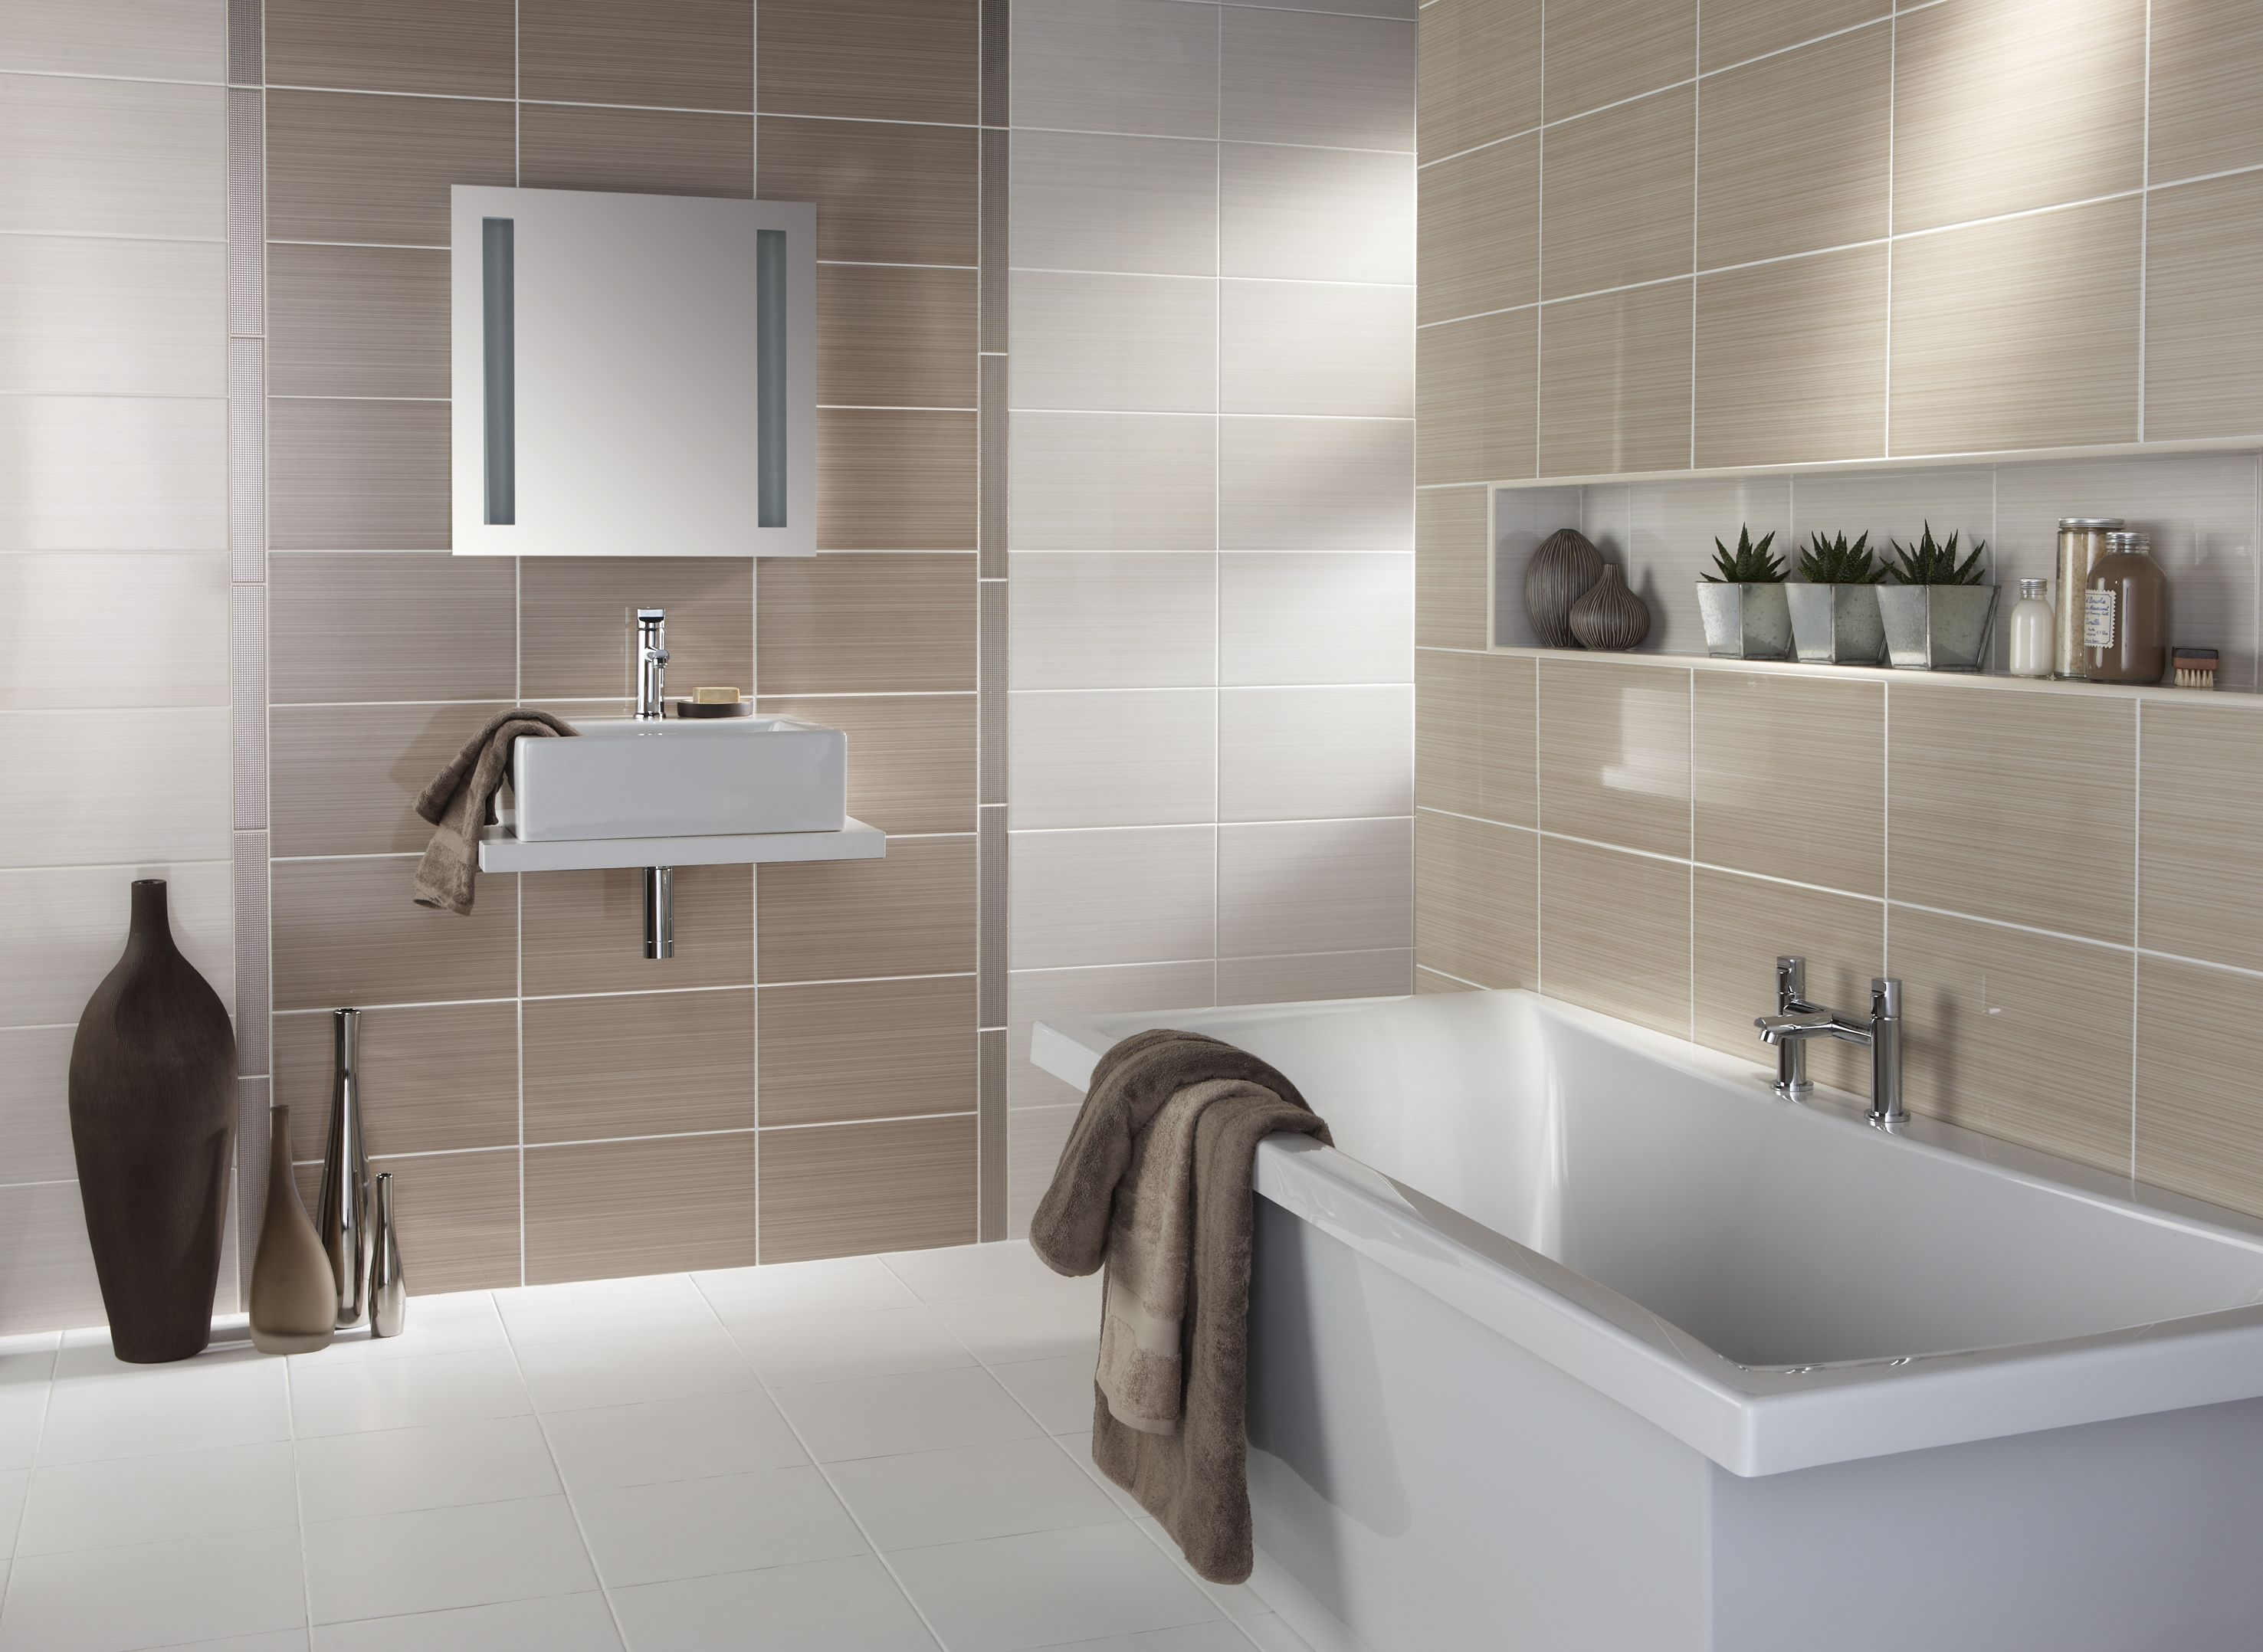 Natural Linear Tiles By BCT. Influenced By Britain's Urban